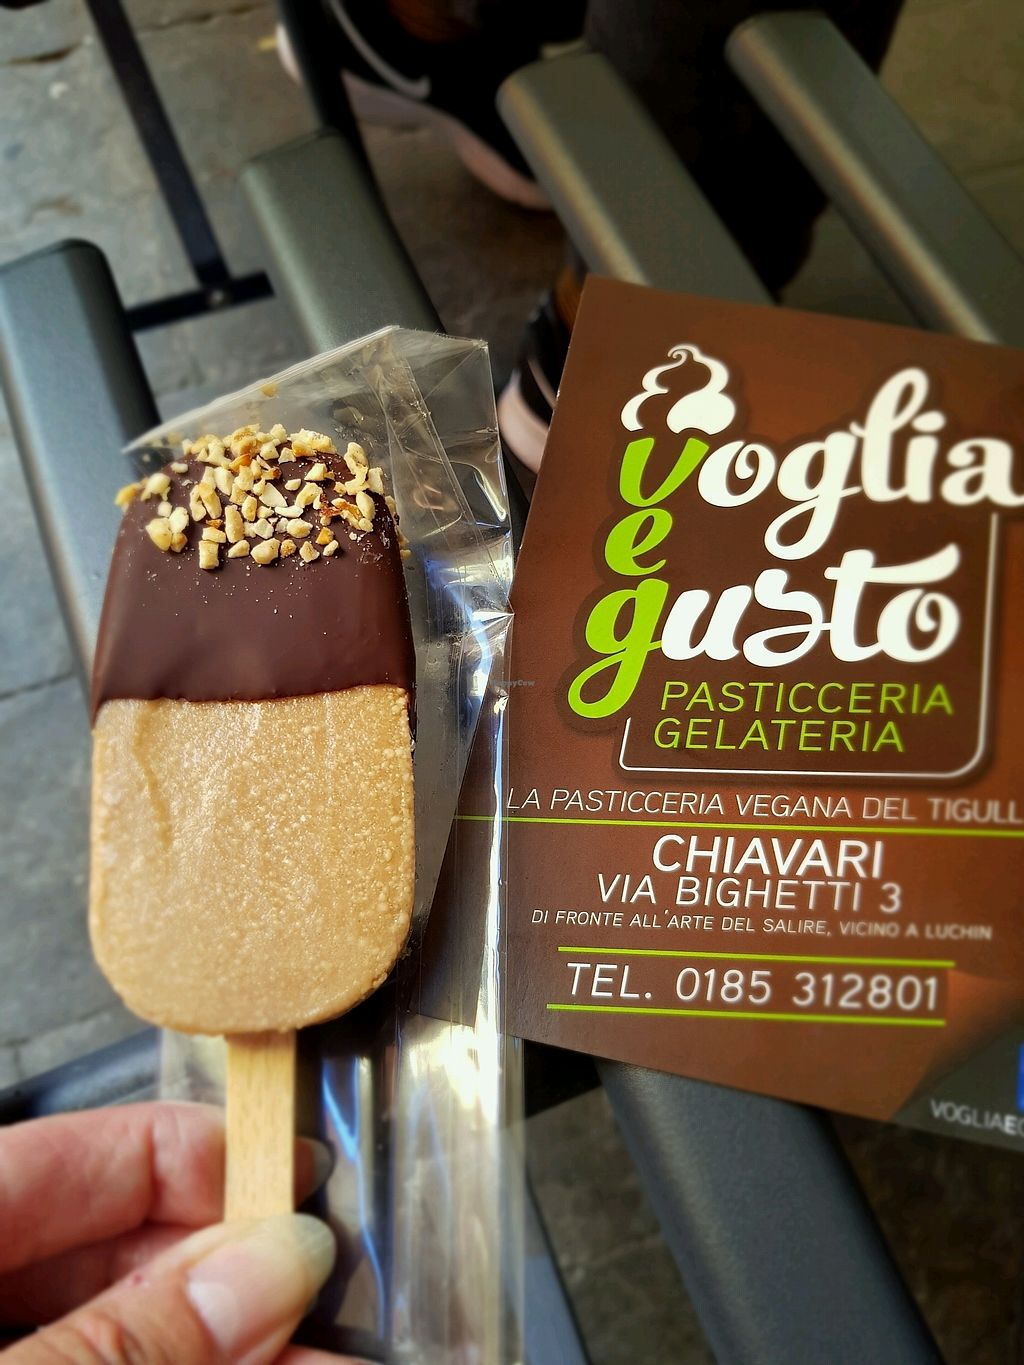 "Photo of Voglia e Gusto  by <a href=""/members/profile/Purplewitch"">Purplewitch</a> <br/>Great place, great icecream ?? <br/> September 17, 2017  - <a href='/contact/abuse/image/78914/305393'>Report</a>"